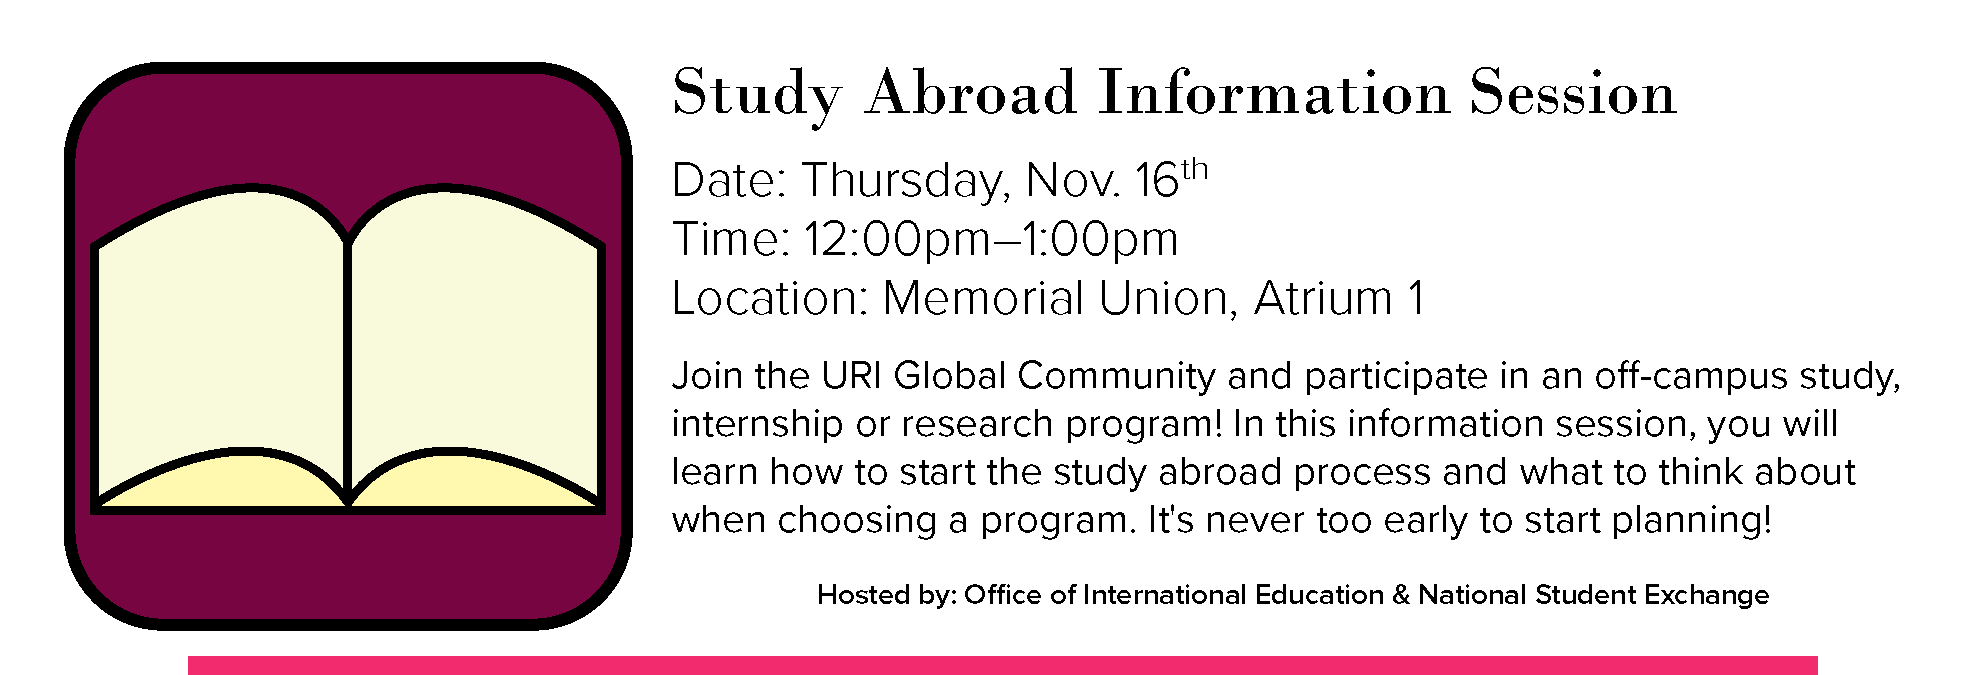 Study Abroad Info Session Event